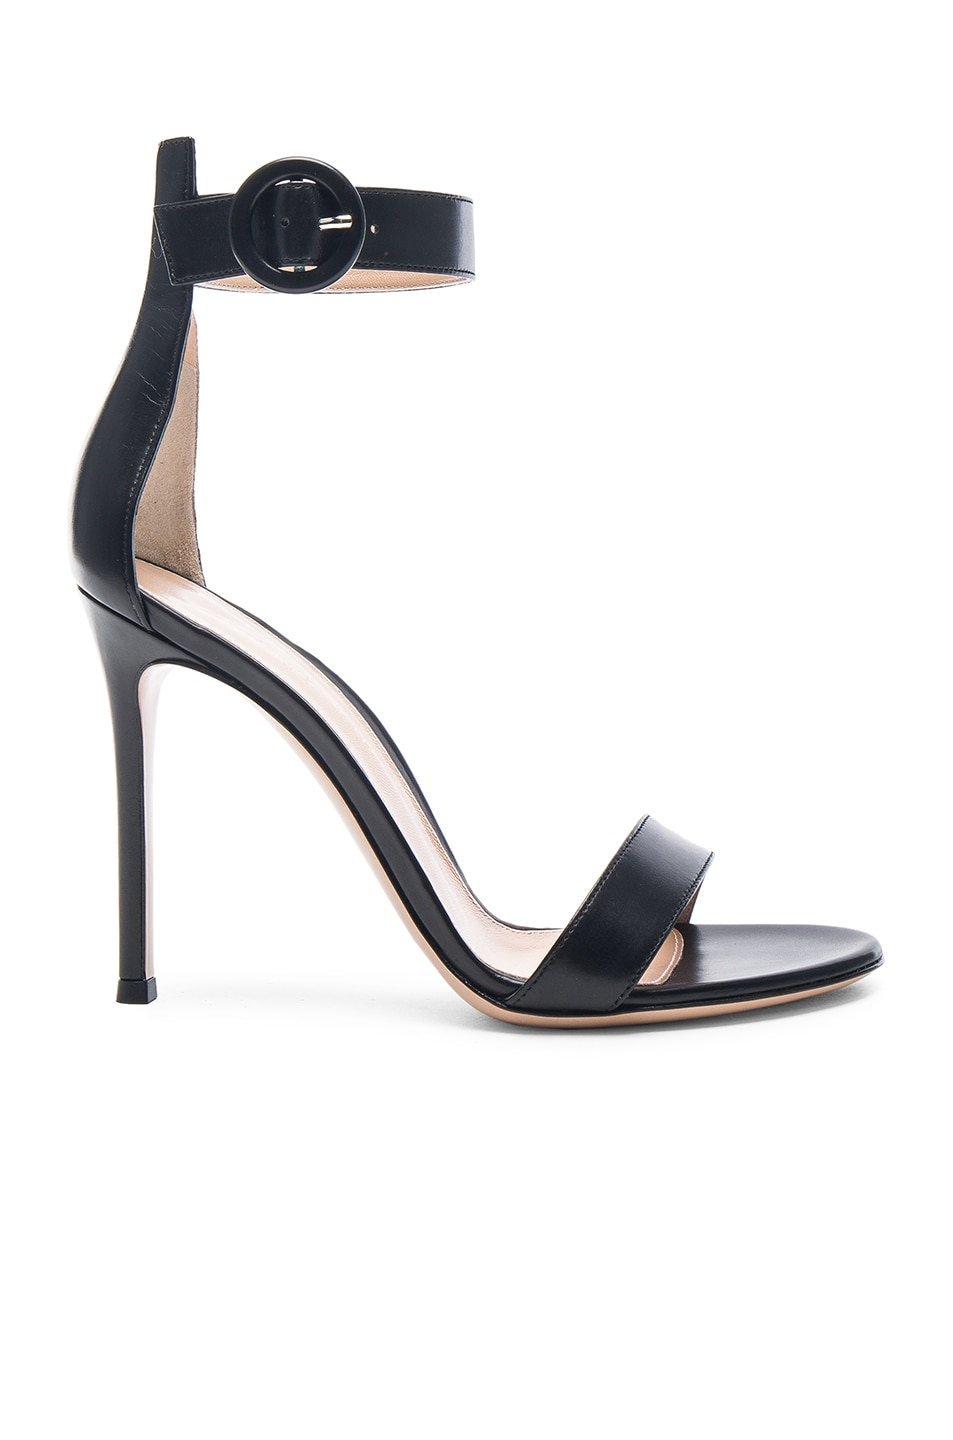 strappy buckle sandals - Black Gianvito Rossi P566Qlw